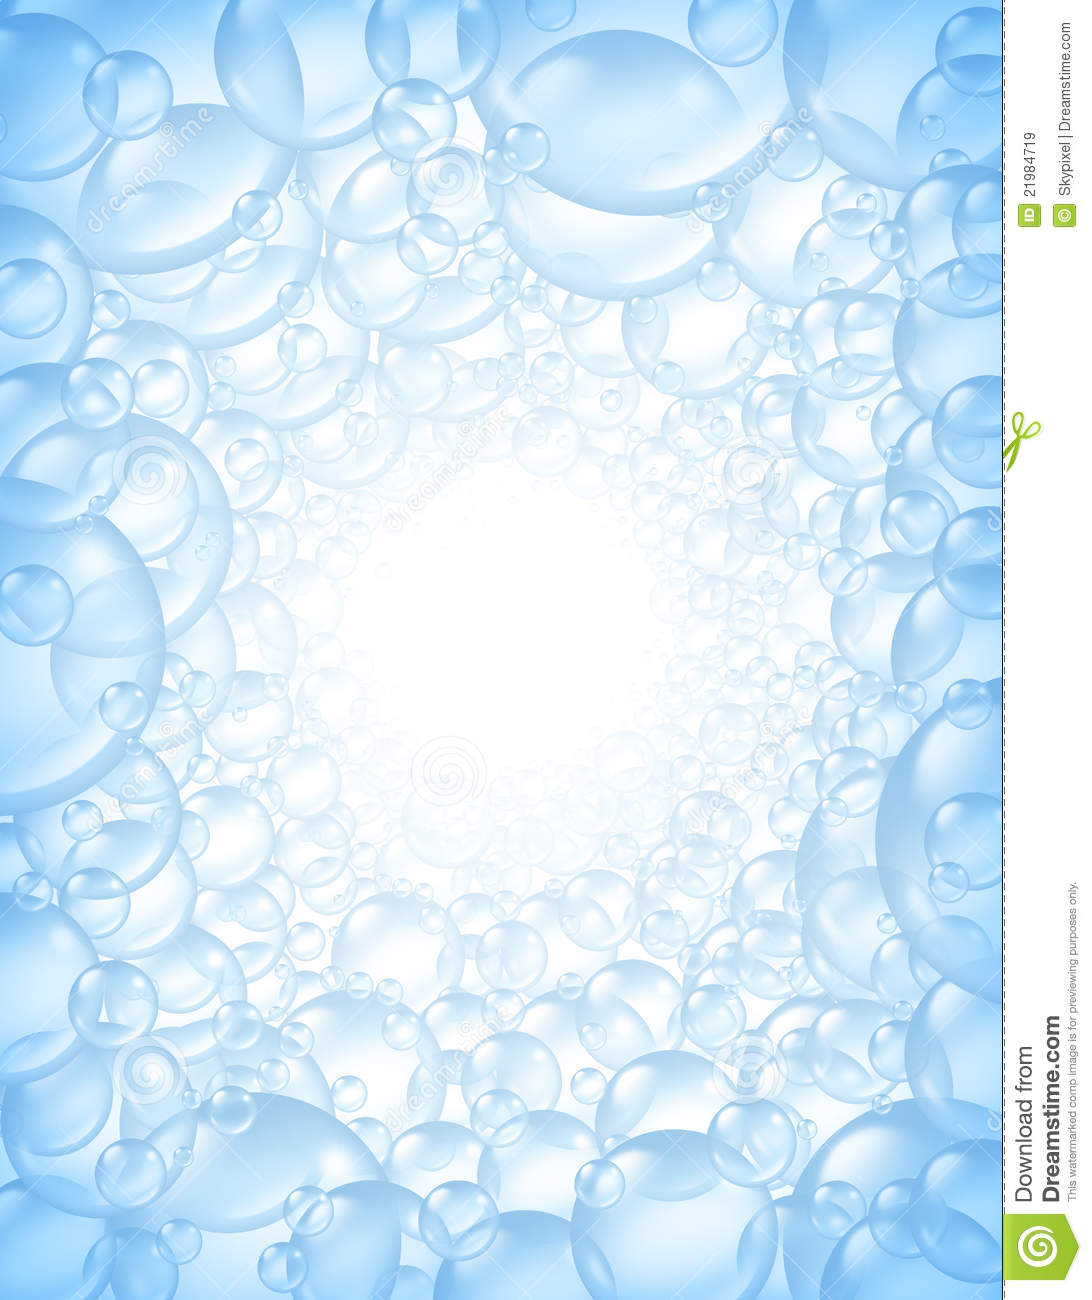 Bubbles Background In Perspective With Center Glow Royalty Free Stock ...